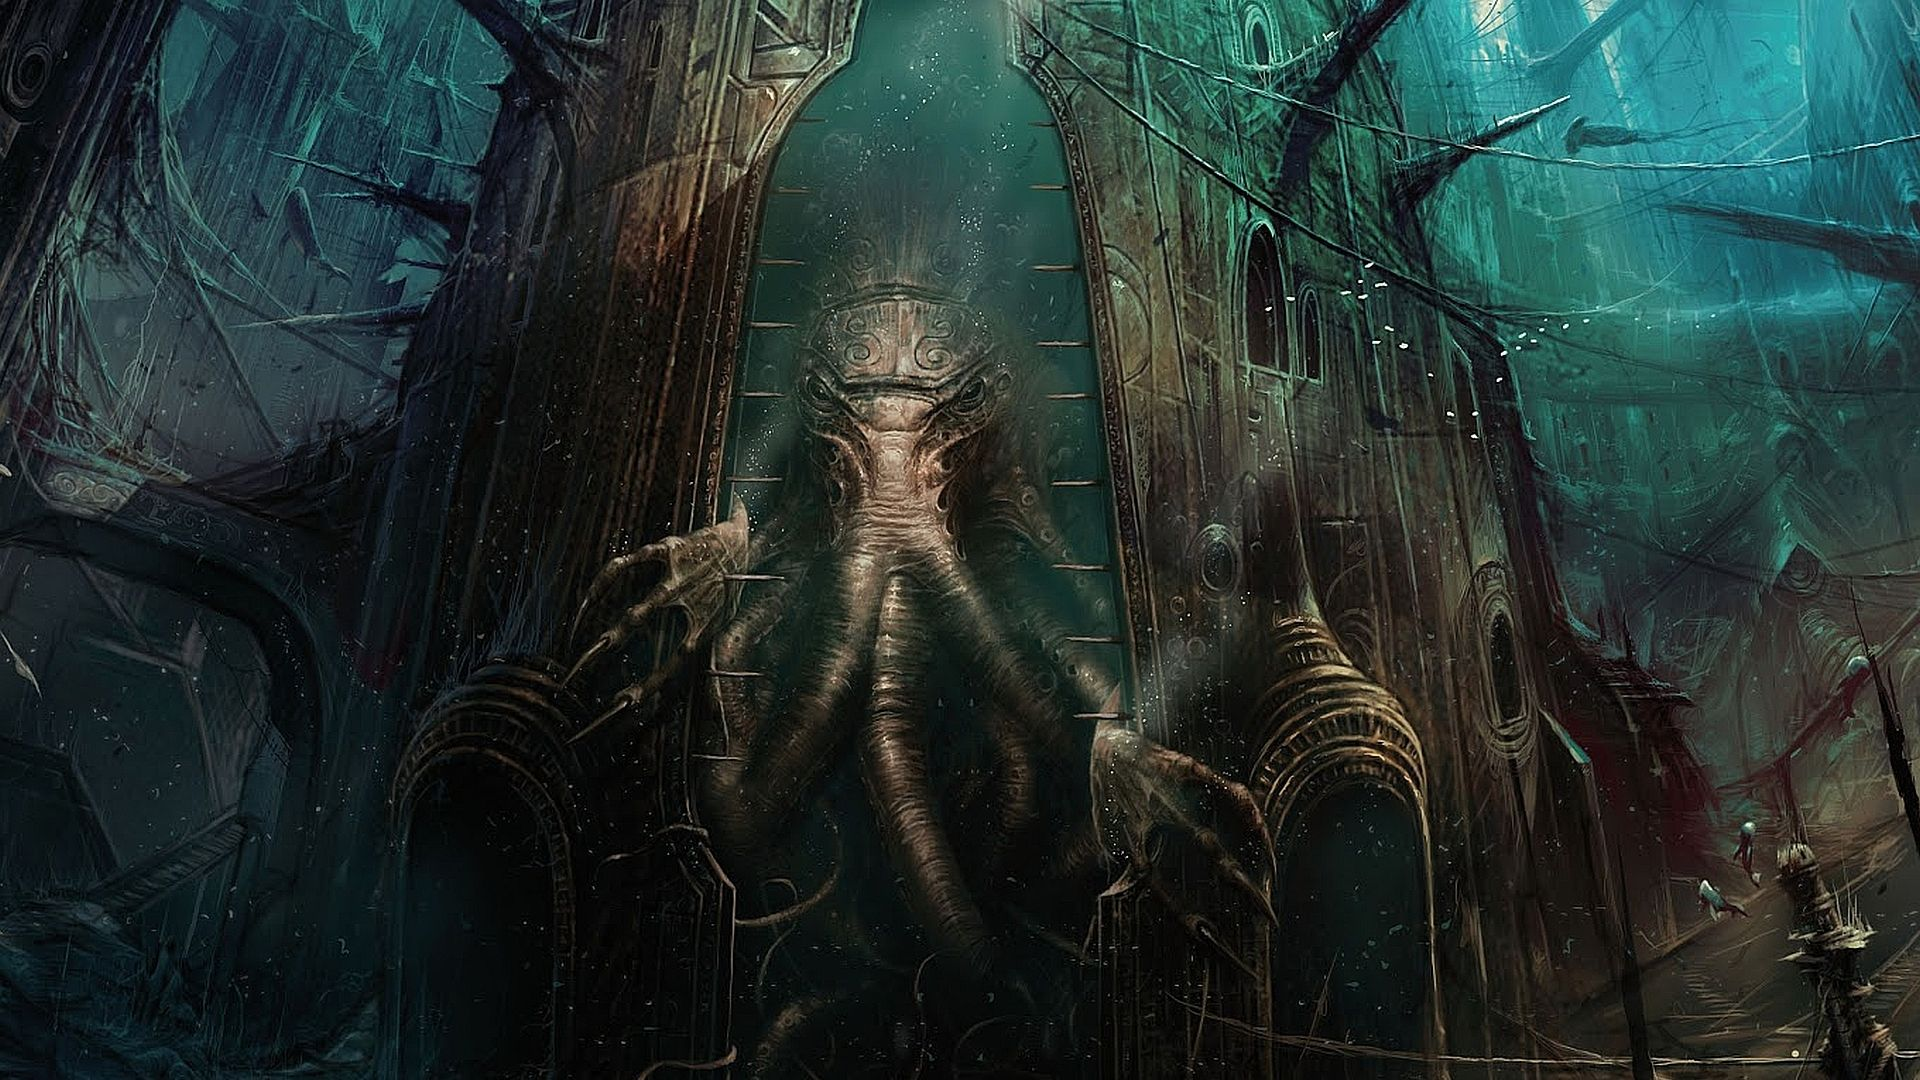 Yog Sothoth Is A Cosmic Entity In The Cthulhu Stories Of H P Lovecraft Description From Darrenendymion Wordpress Com I Sear Lovecraftian Cthulhu Cthulhu Art